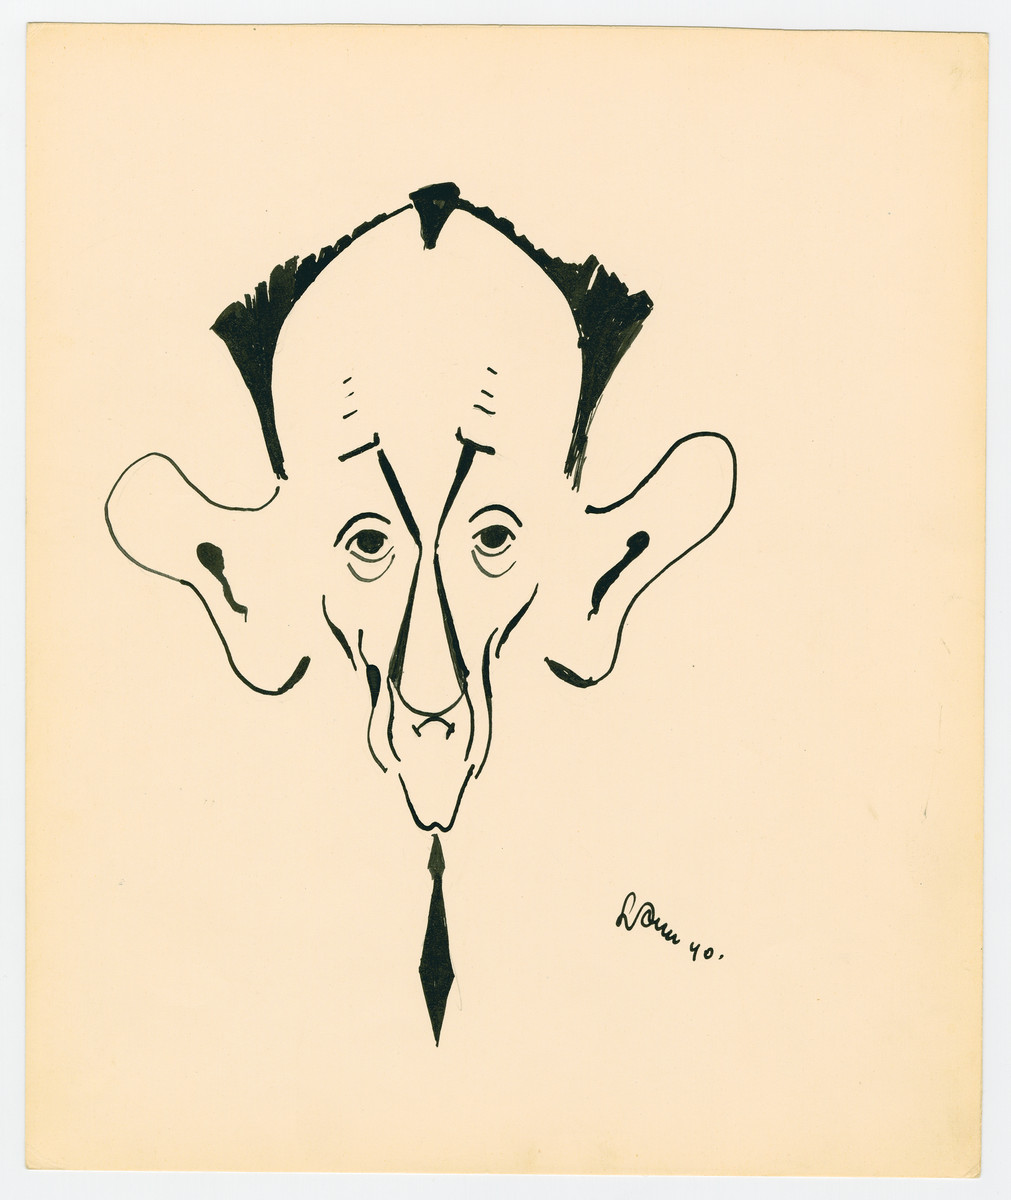 Caricature by Lutek Orenbach of Uncle Jacob.